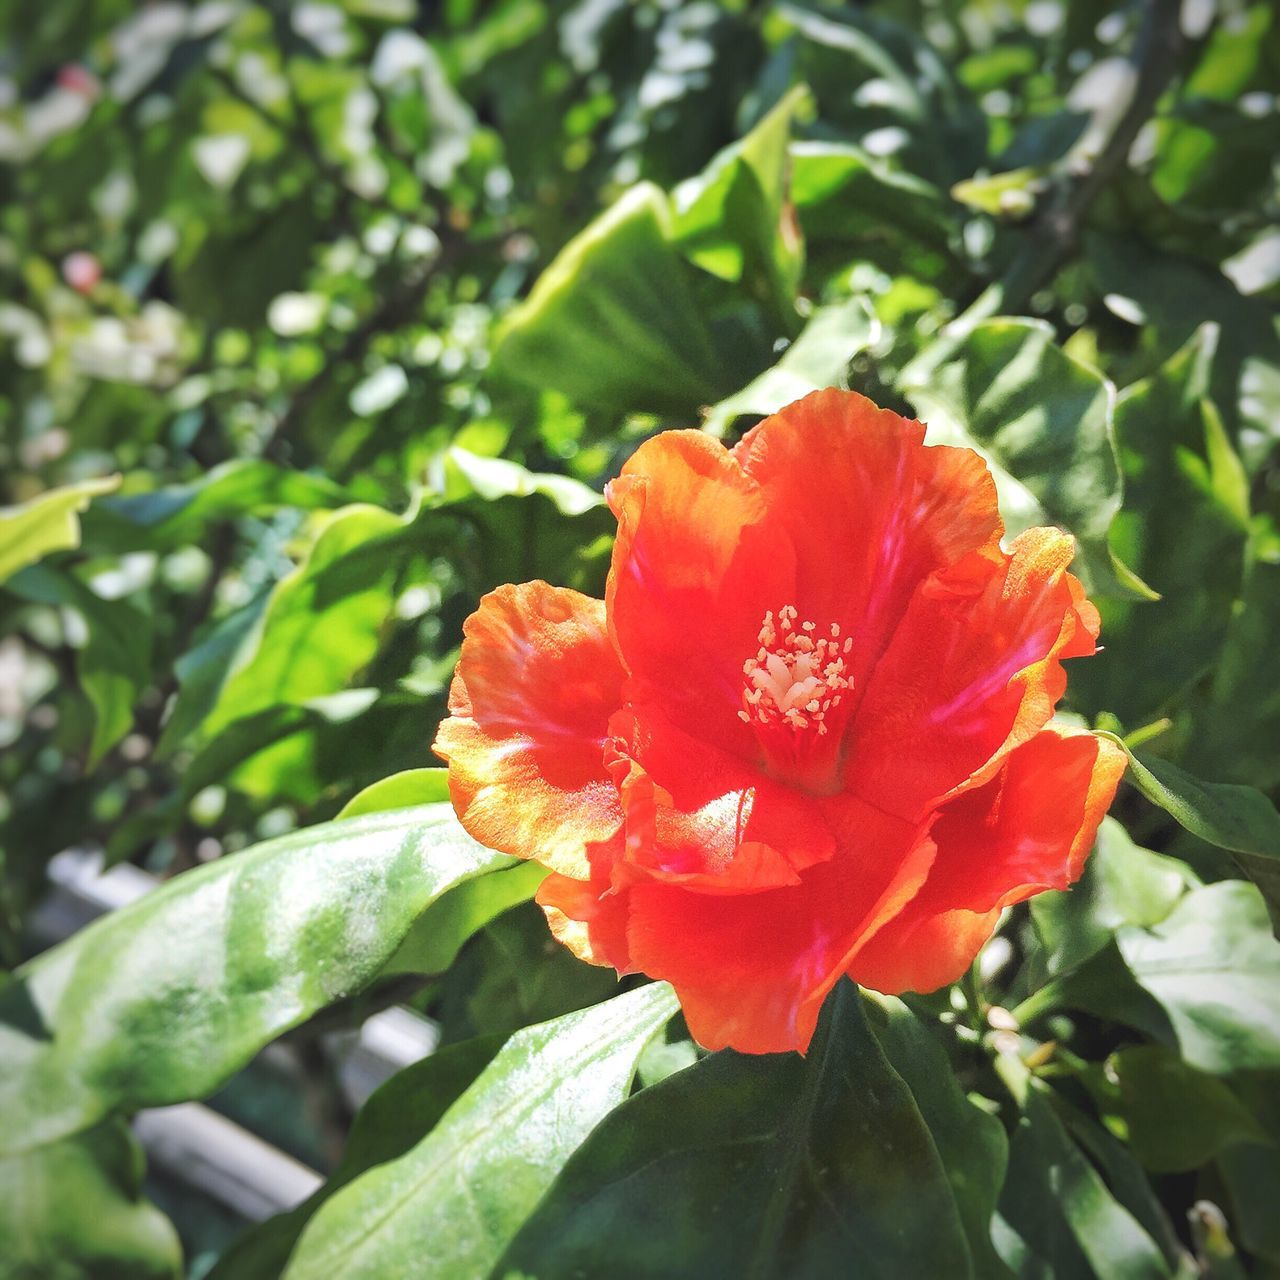 """""""Her beauty is beyond like other, and because of that, she is doomed to suffer. """" Flower Nature Beauty In Nature Growth Plant Petal Outdoors Day Leaf Fragility Close-up Freshness Red Wild Cycle Symbolism"""